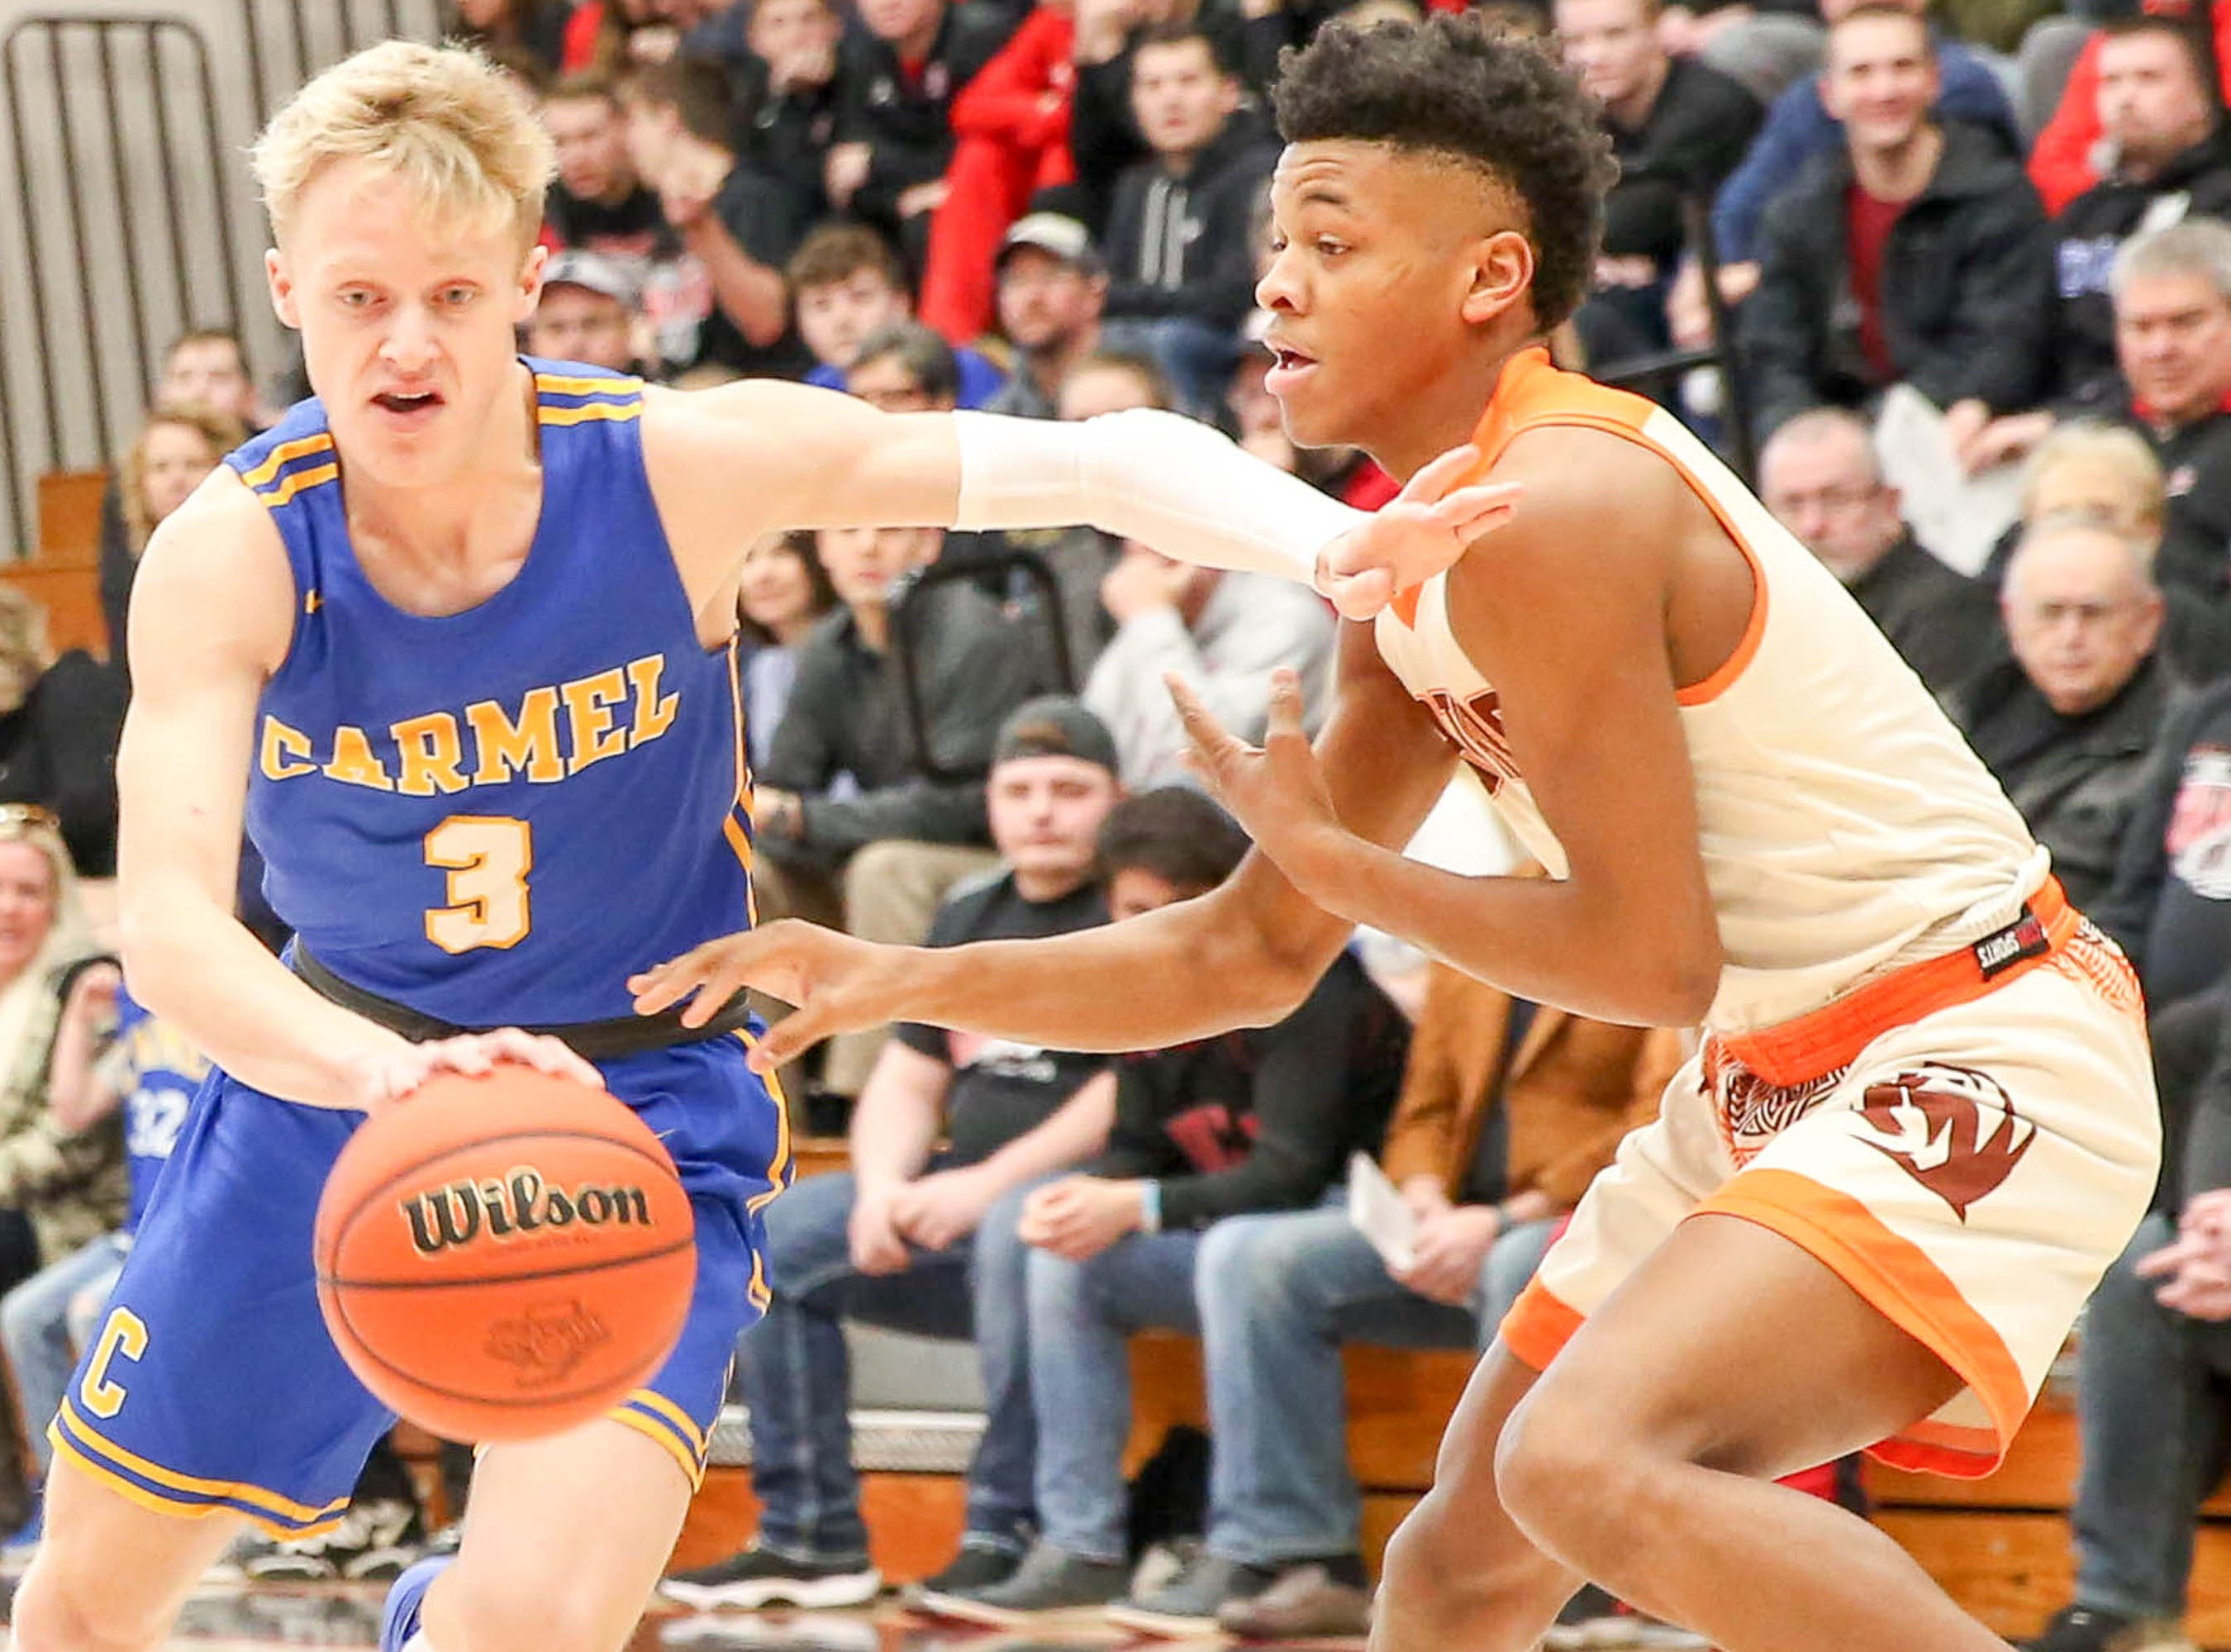 Carmel's Karsten Windlan (3) drives to the basket during Saturday's regional semifinal against FW Northrop. The Greyhounds beat Zionsville in the nightcap.